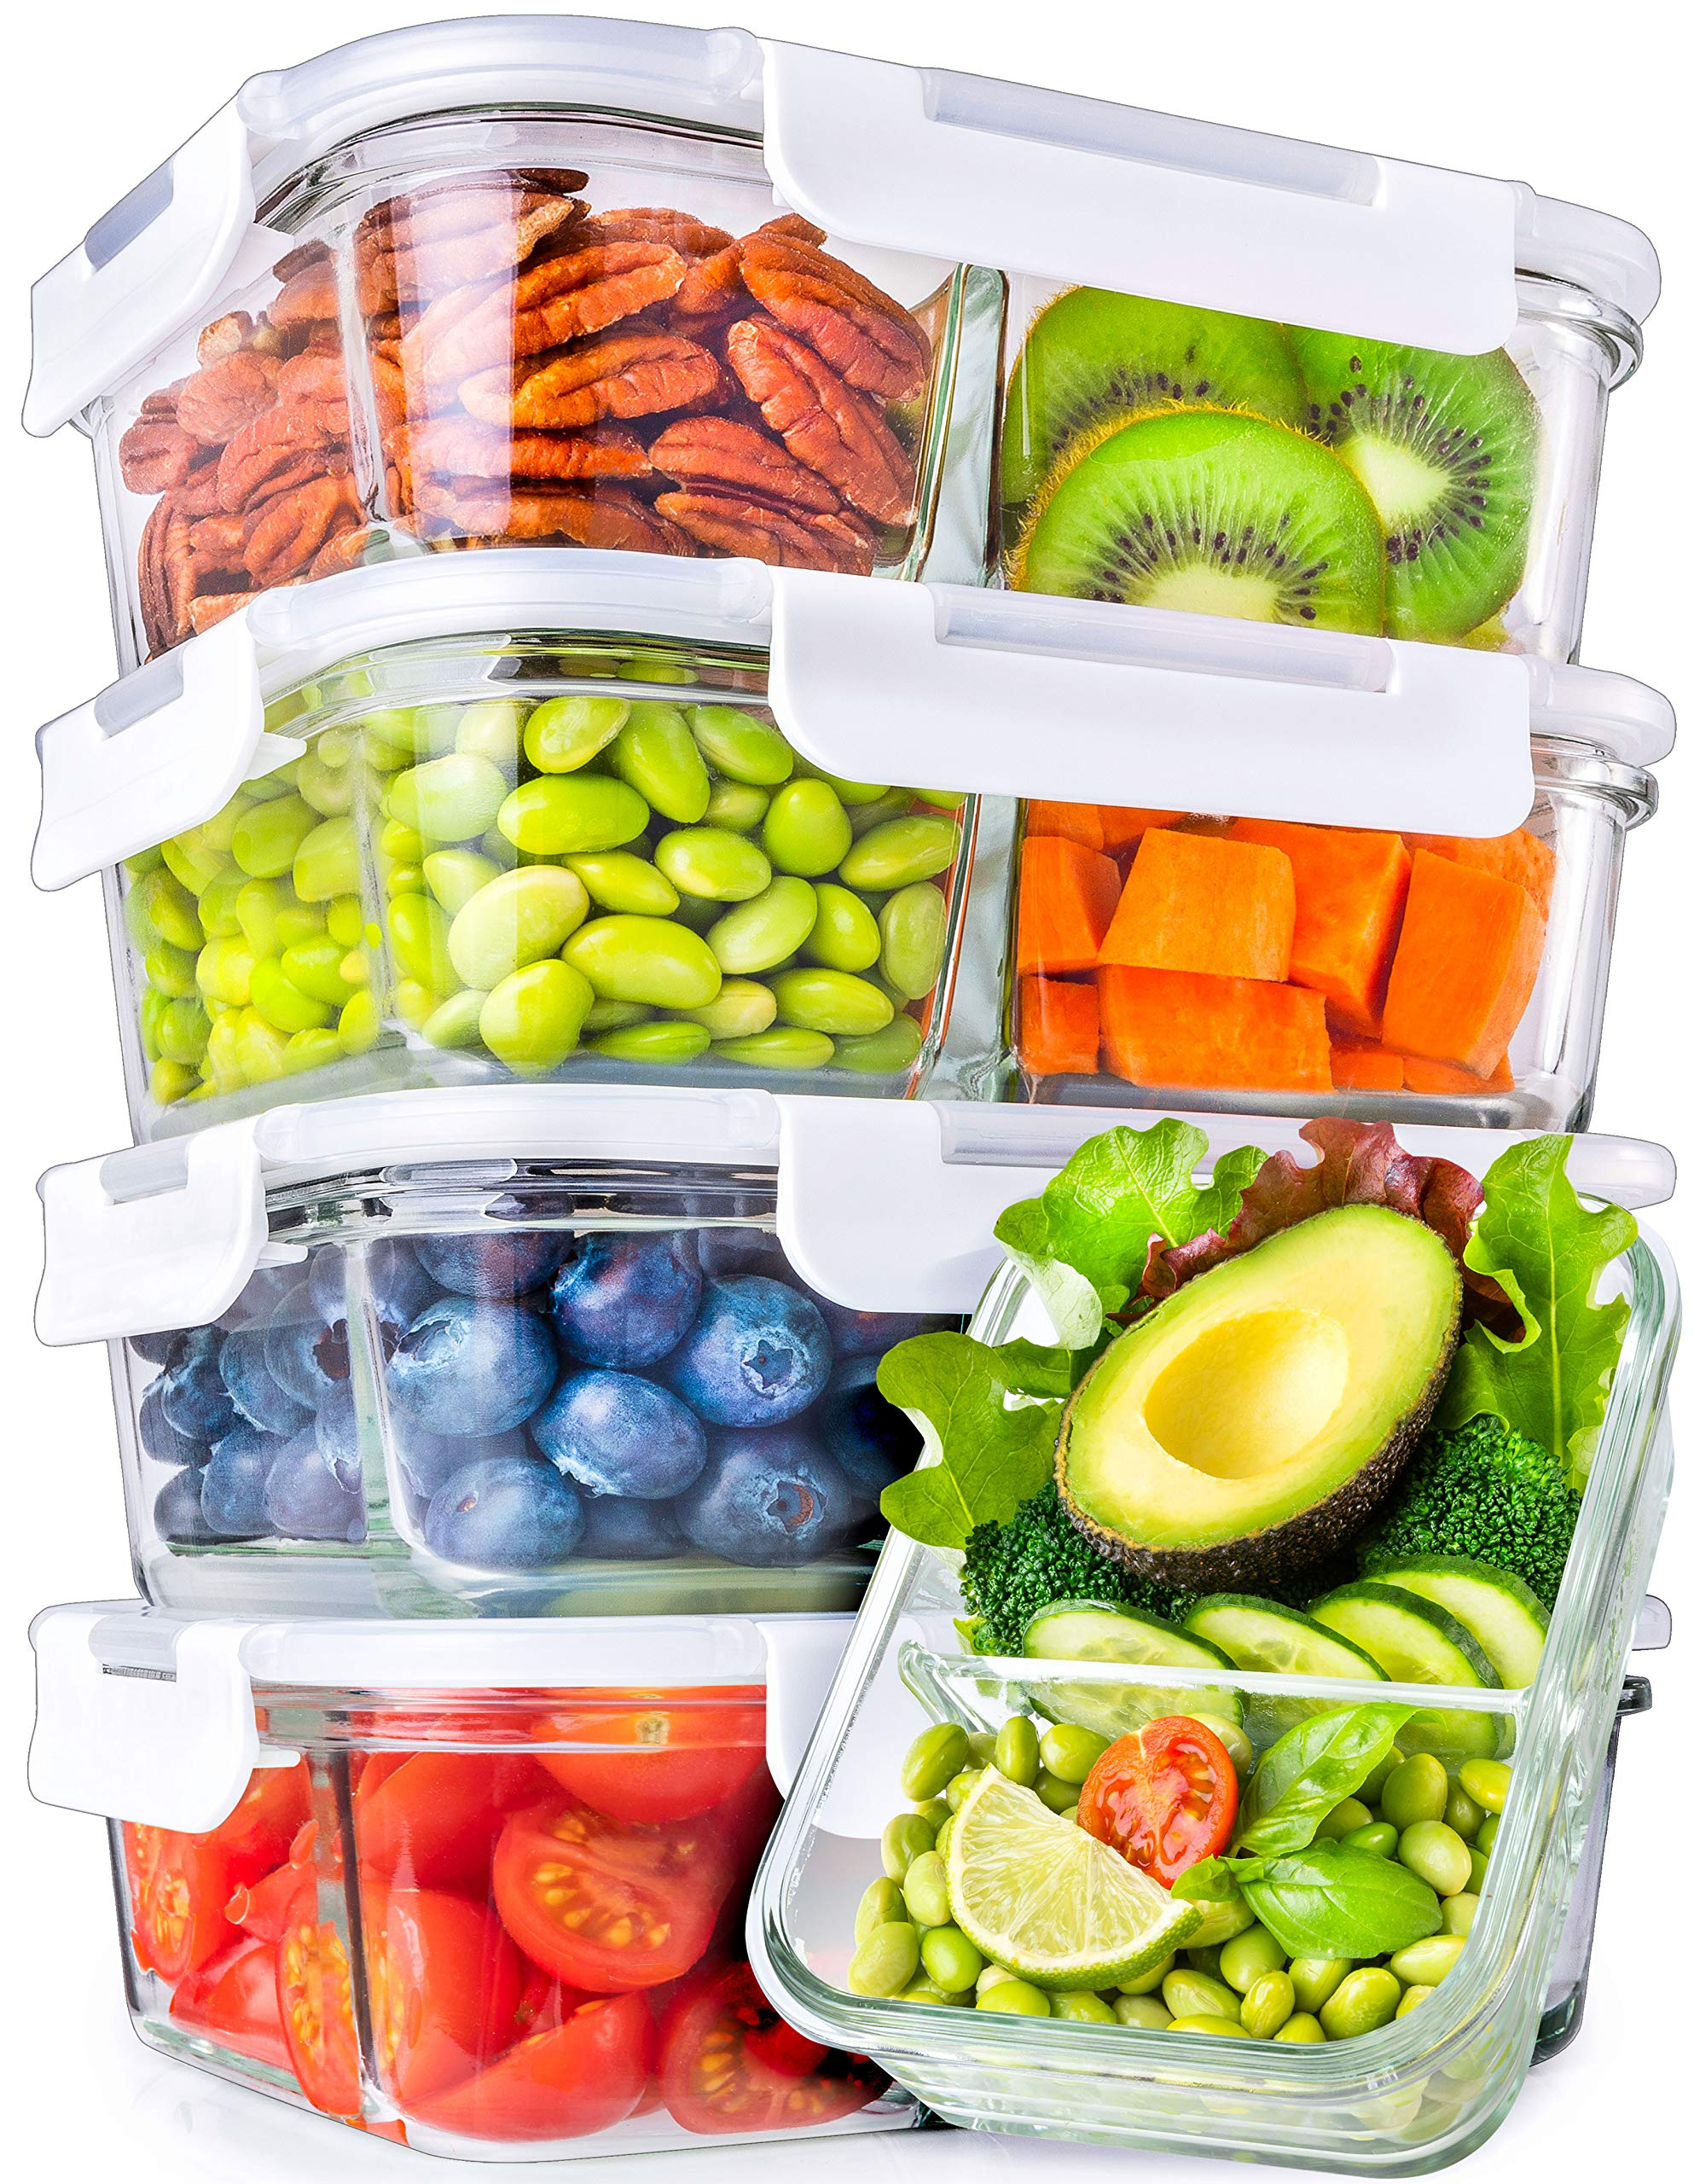 Glass Meal Prep Containers 2 Compartment - Glass Food Storage Containers with Lids - Glass Containers with Lids Glass Storage Containers with Lids Glass Food Containers Glass Lunch Containers Divided